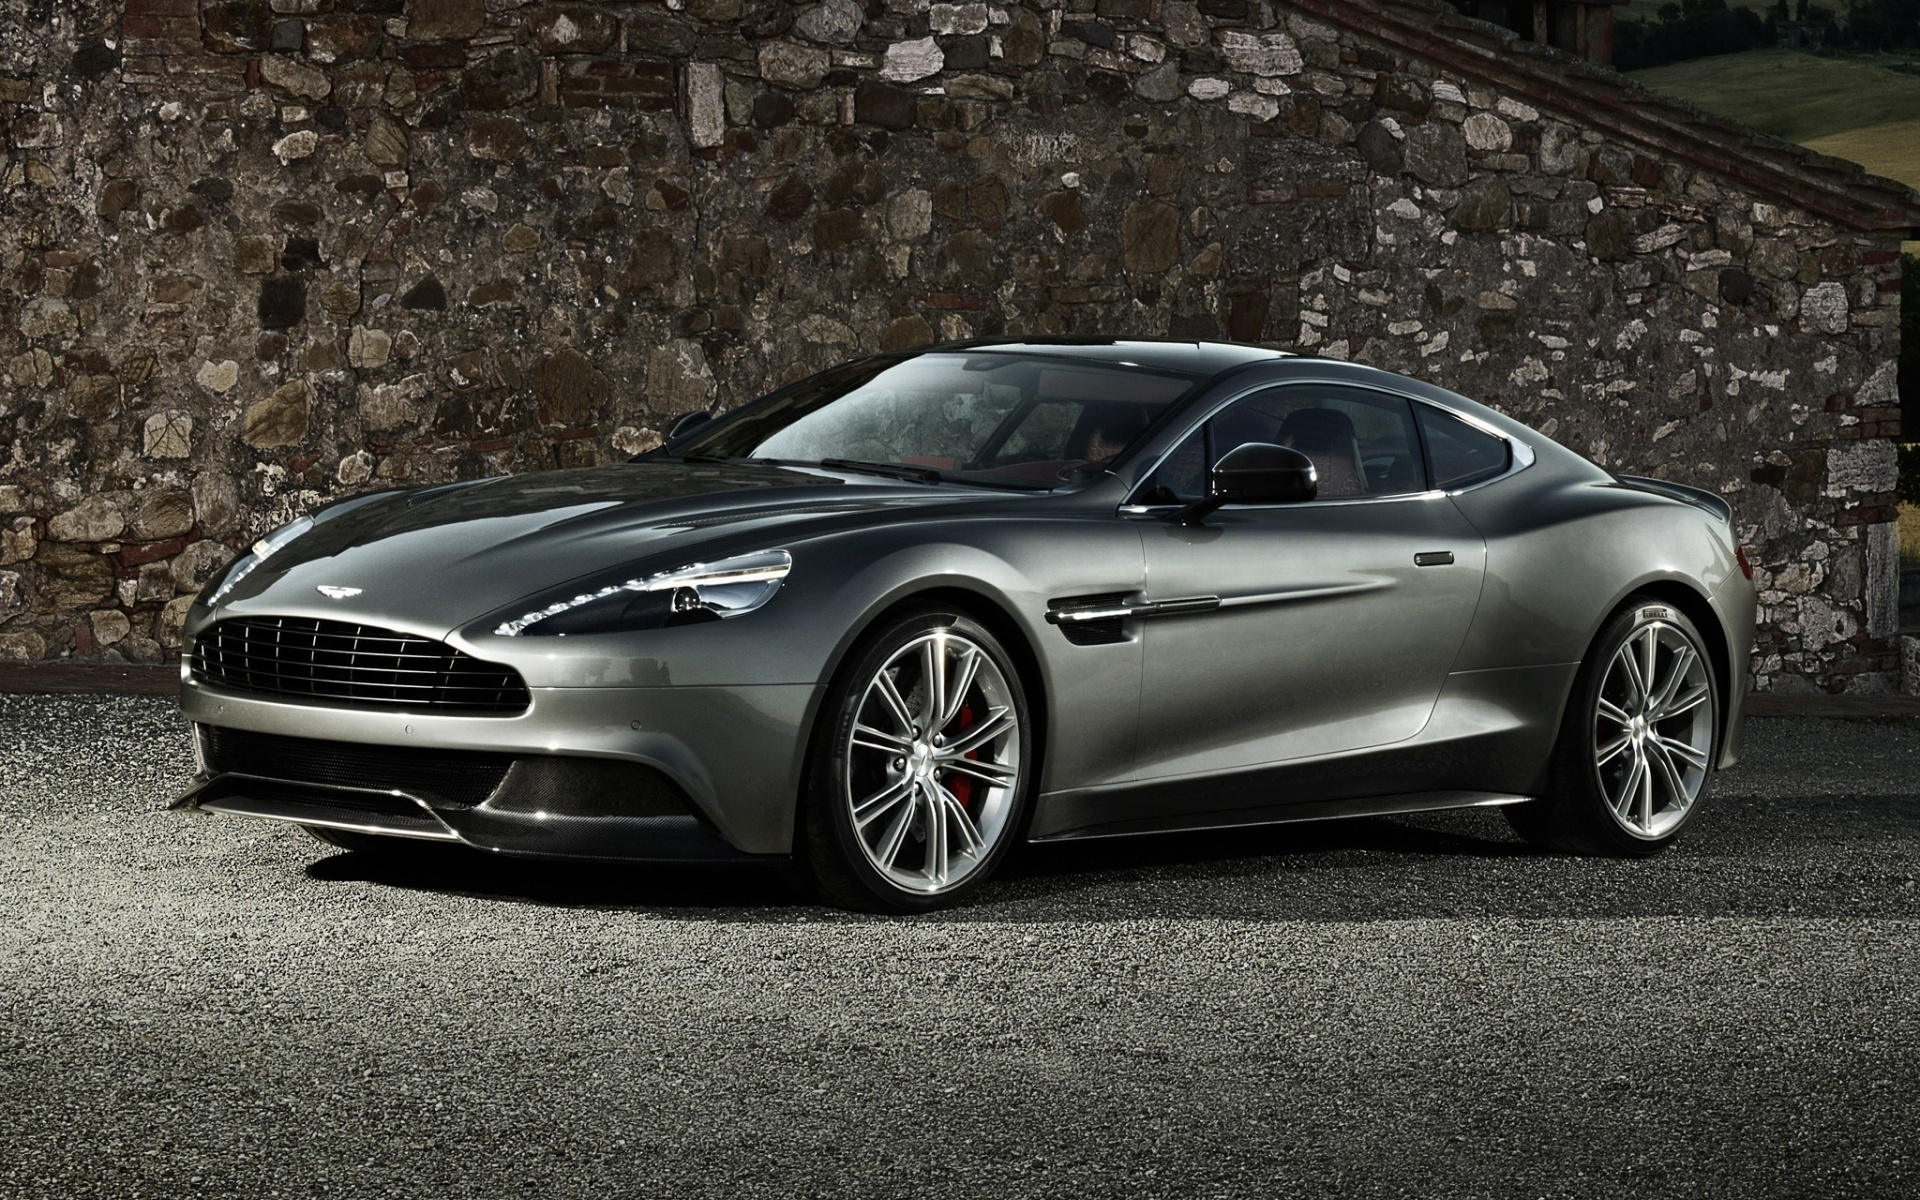 Aston Martin Vanquish Widescreen Wallpaper